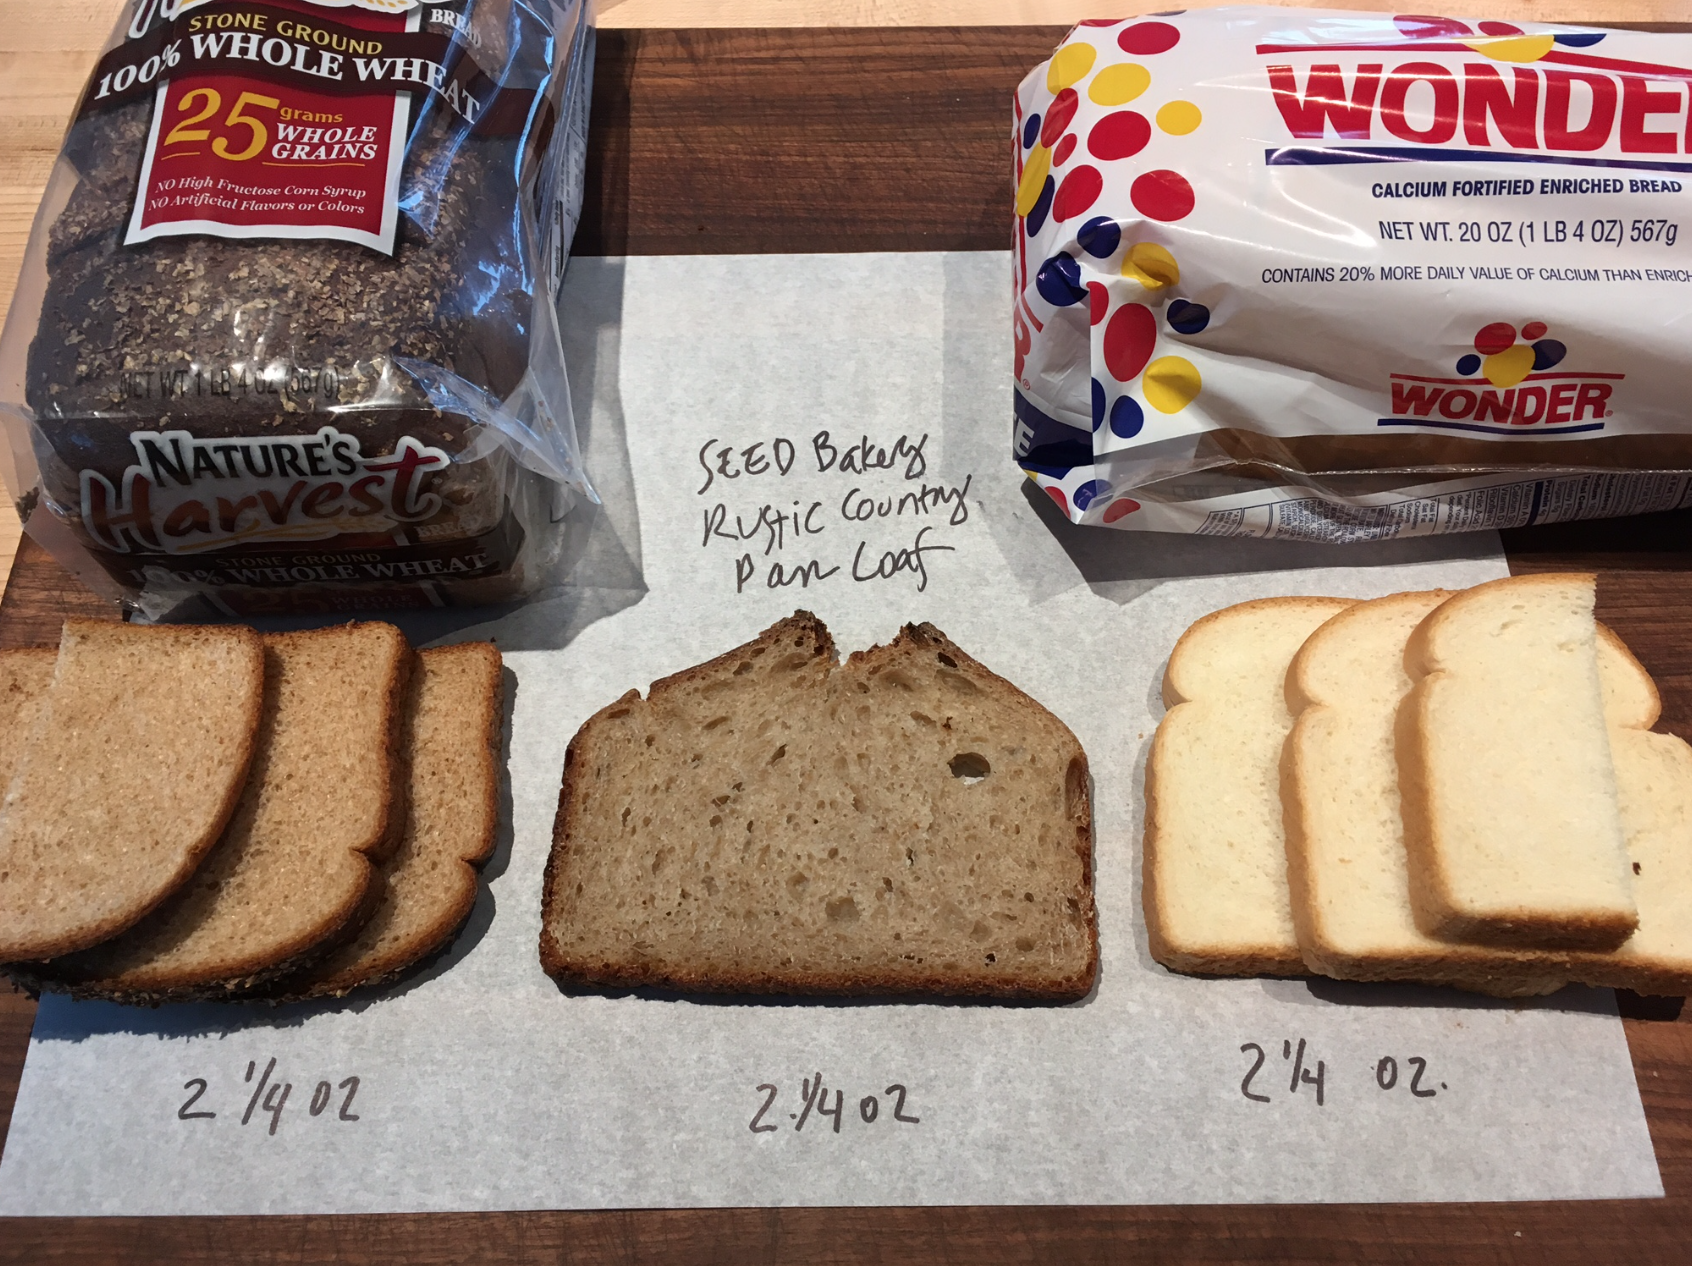 Bread samples by volume and by the ounce.